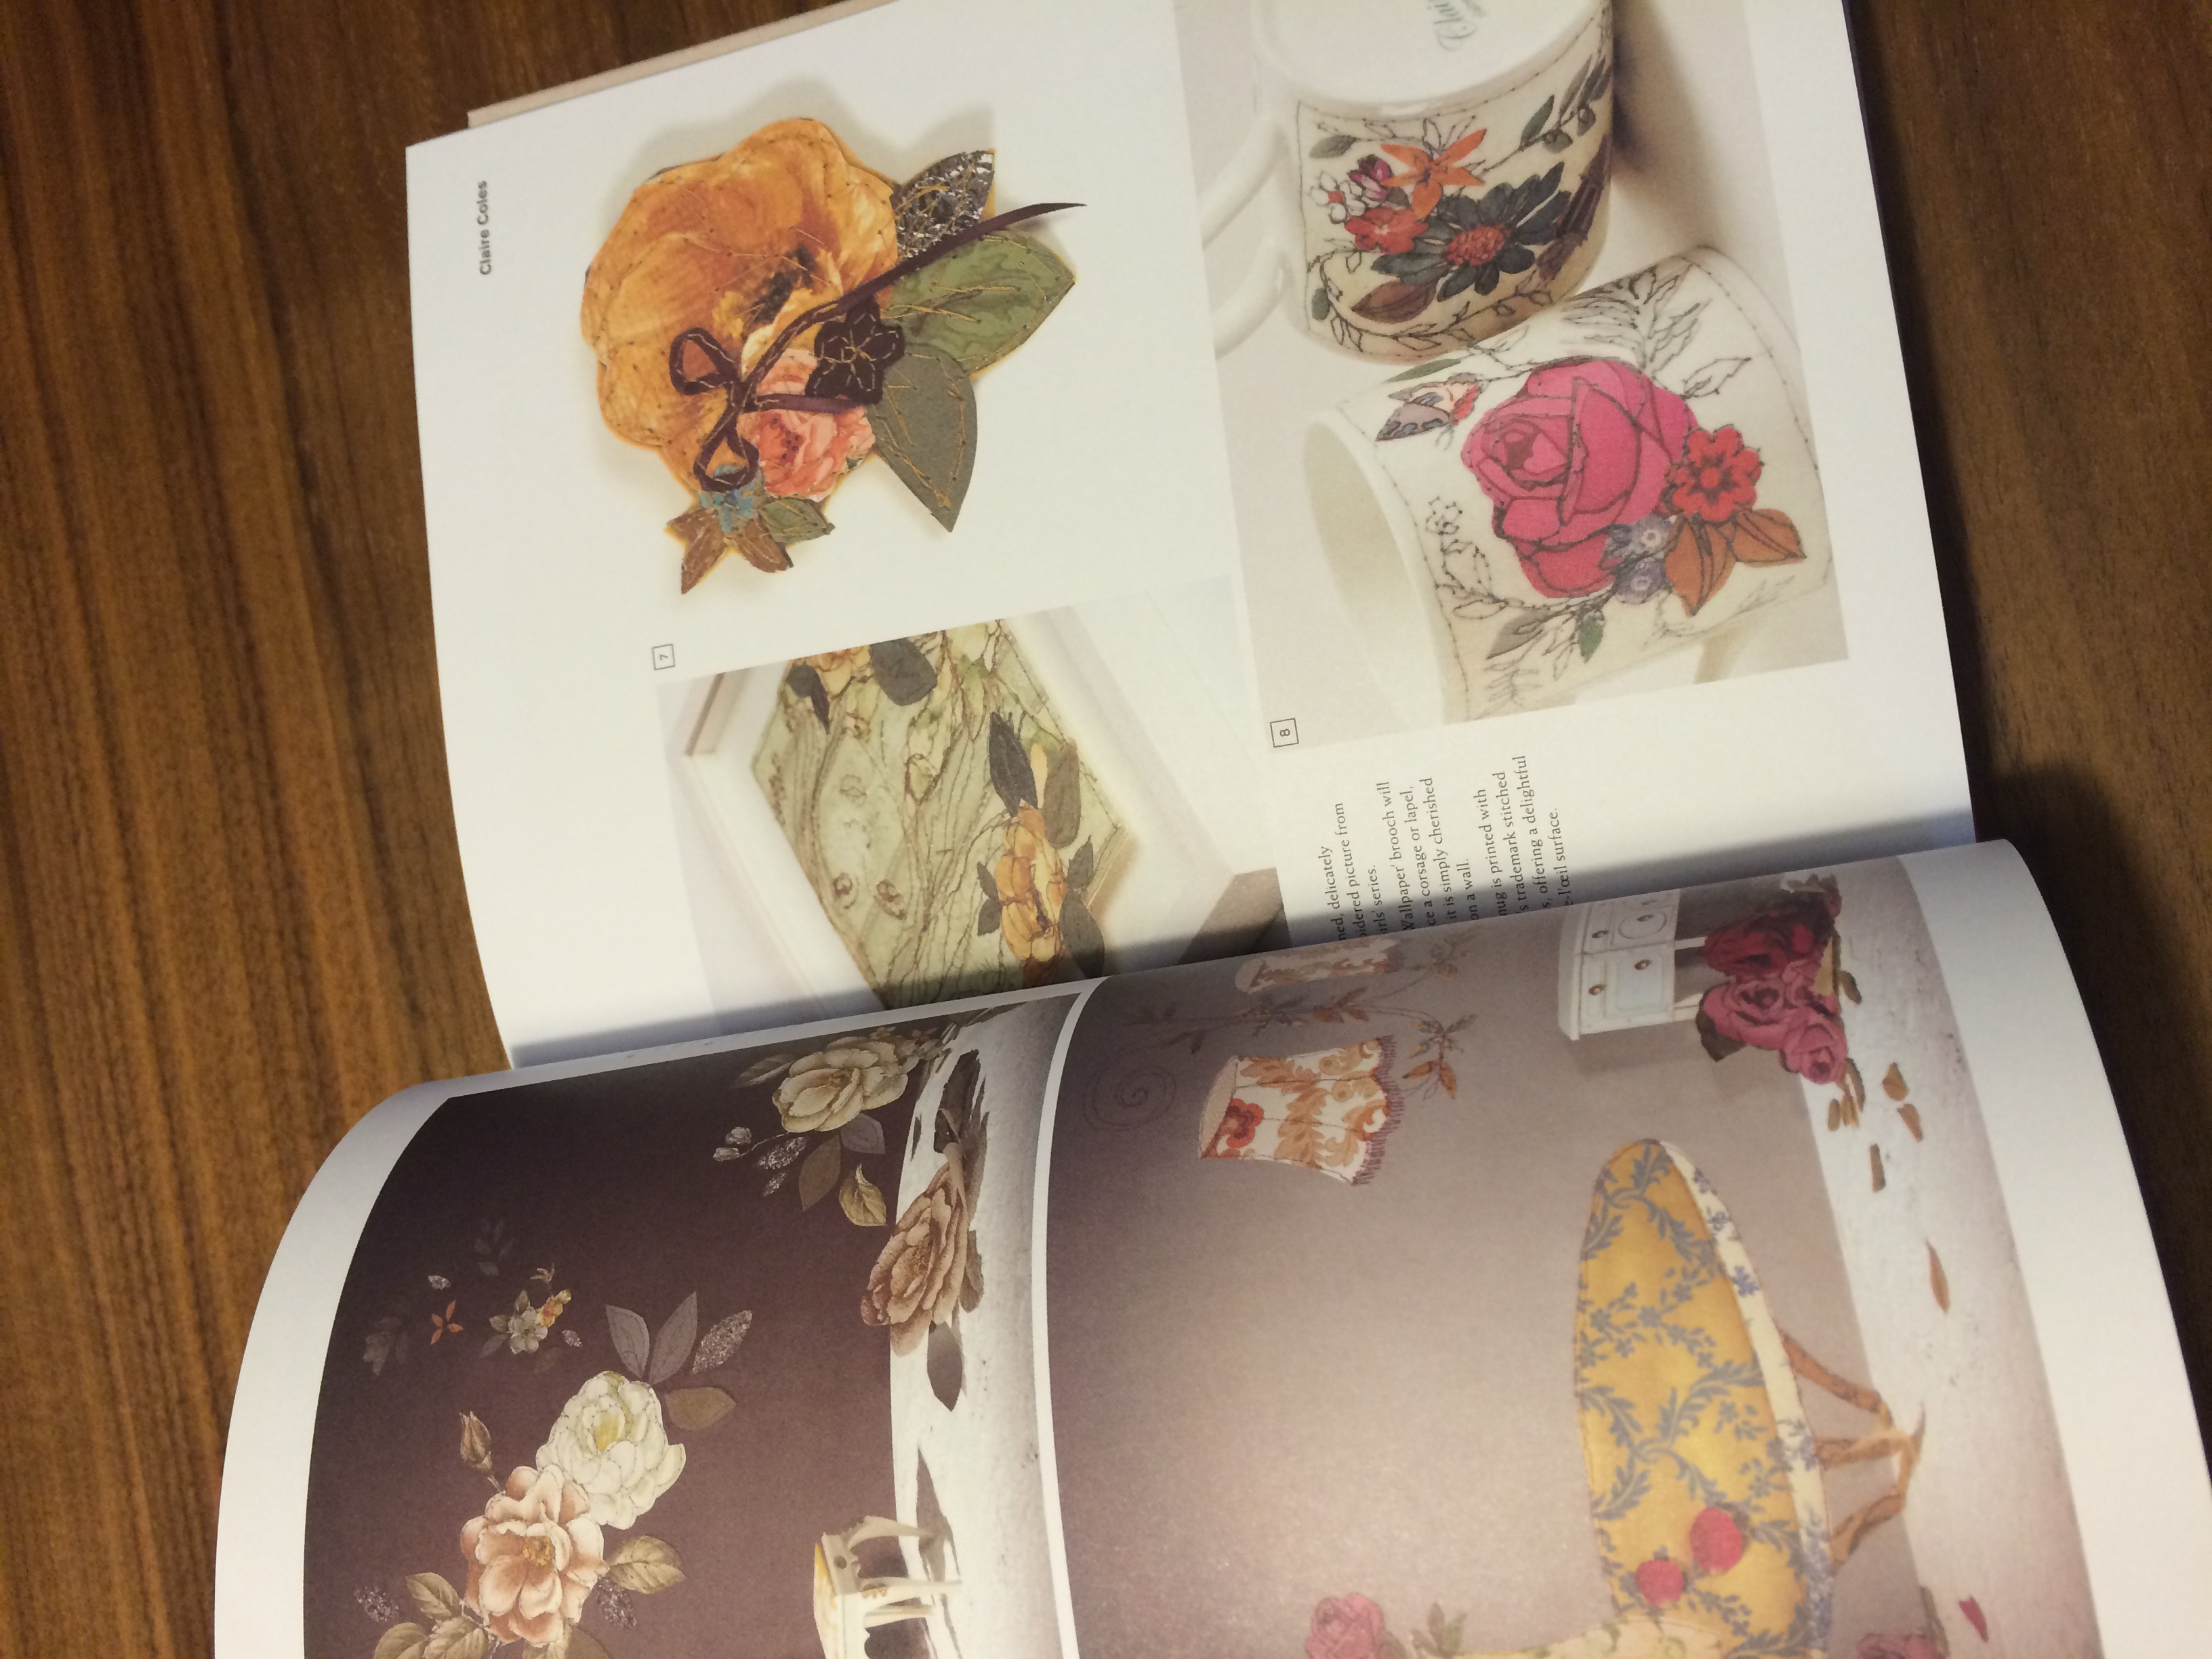 A page from The New Artisans book